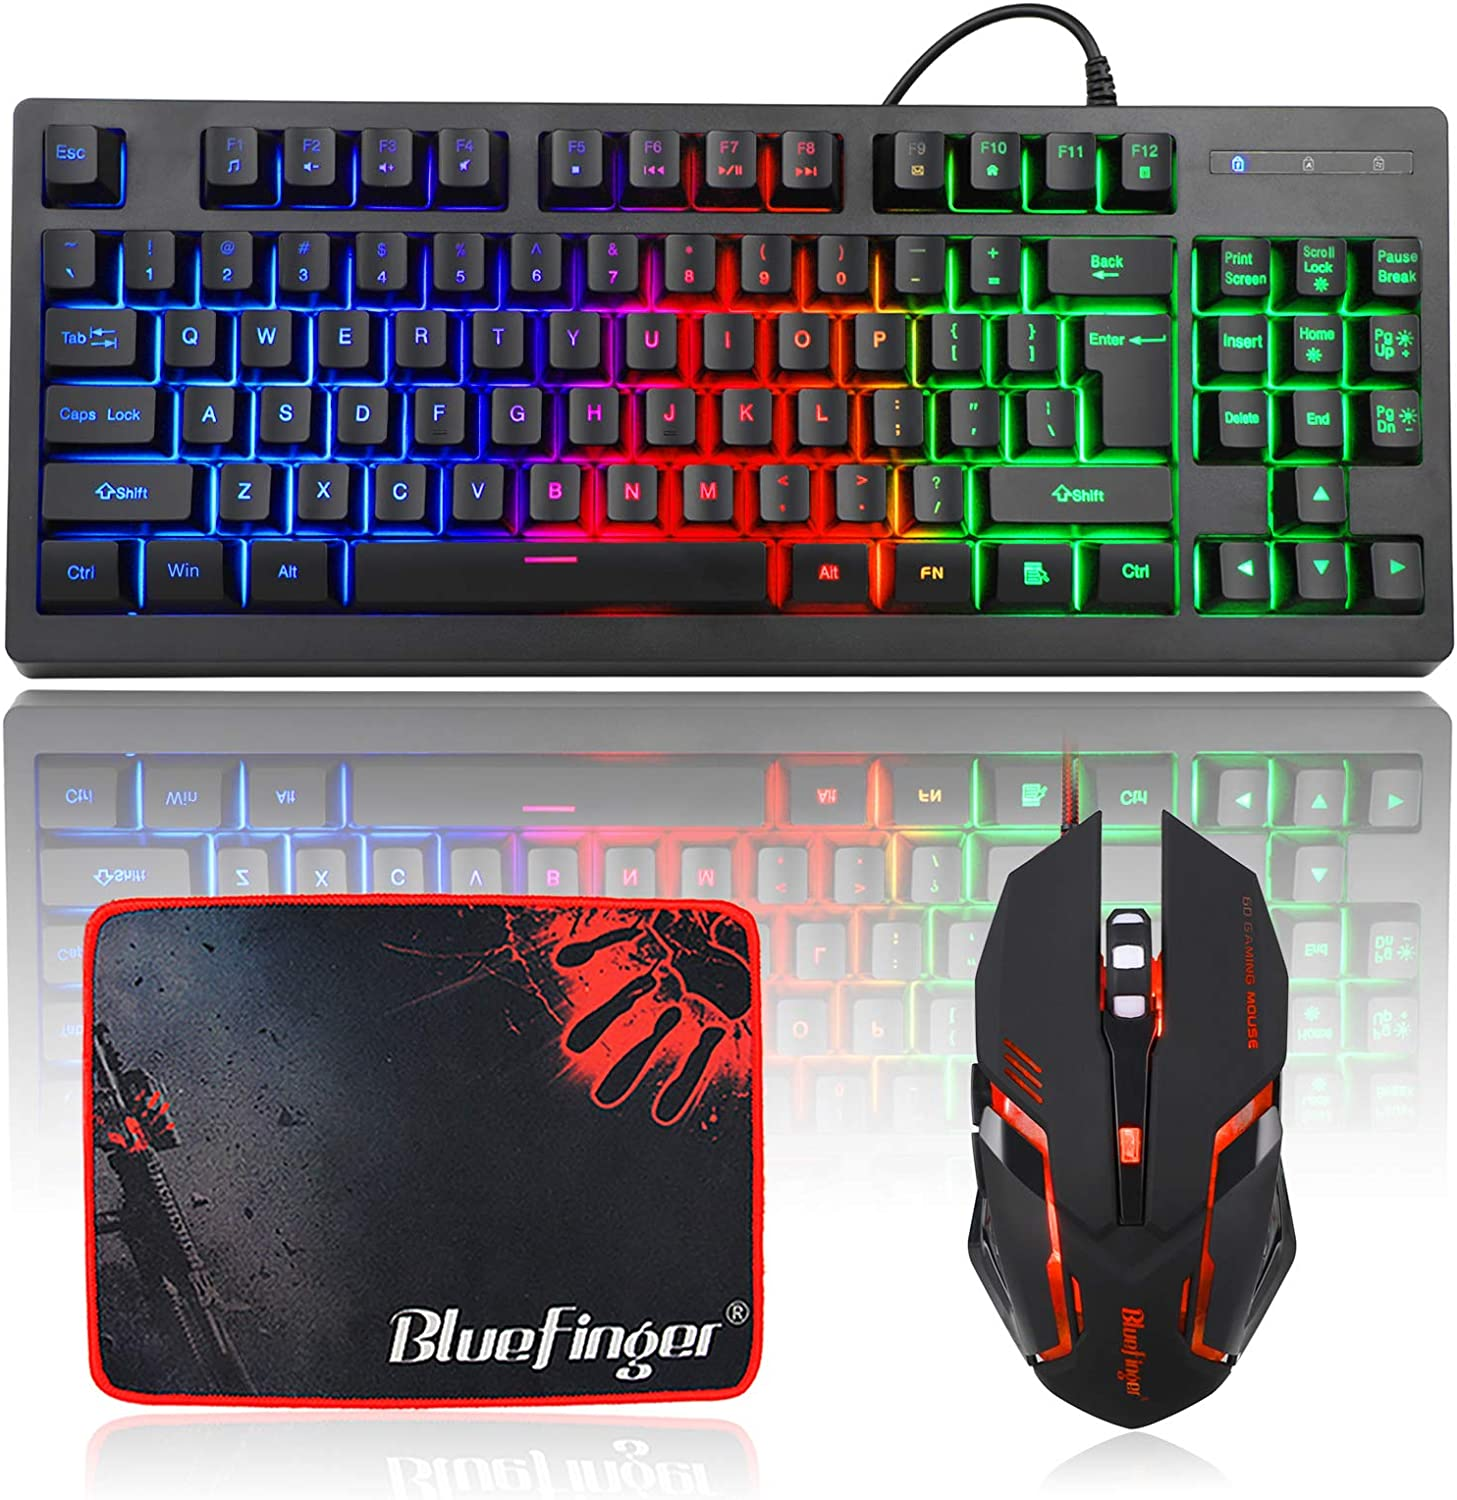 Color : Black, Size : Black Switch Crystalzhong Rainbow LED Backlit Keyboard 87 Keys Dual Mode USB Wired Bluetooth 3.0 Wireless Rechargeable ICE Blue Monochrome Backlighting Gaming Keyboard